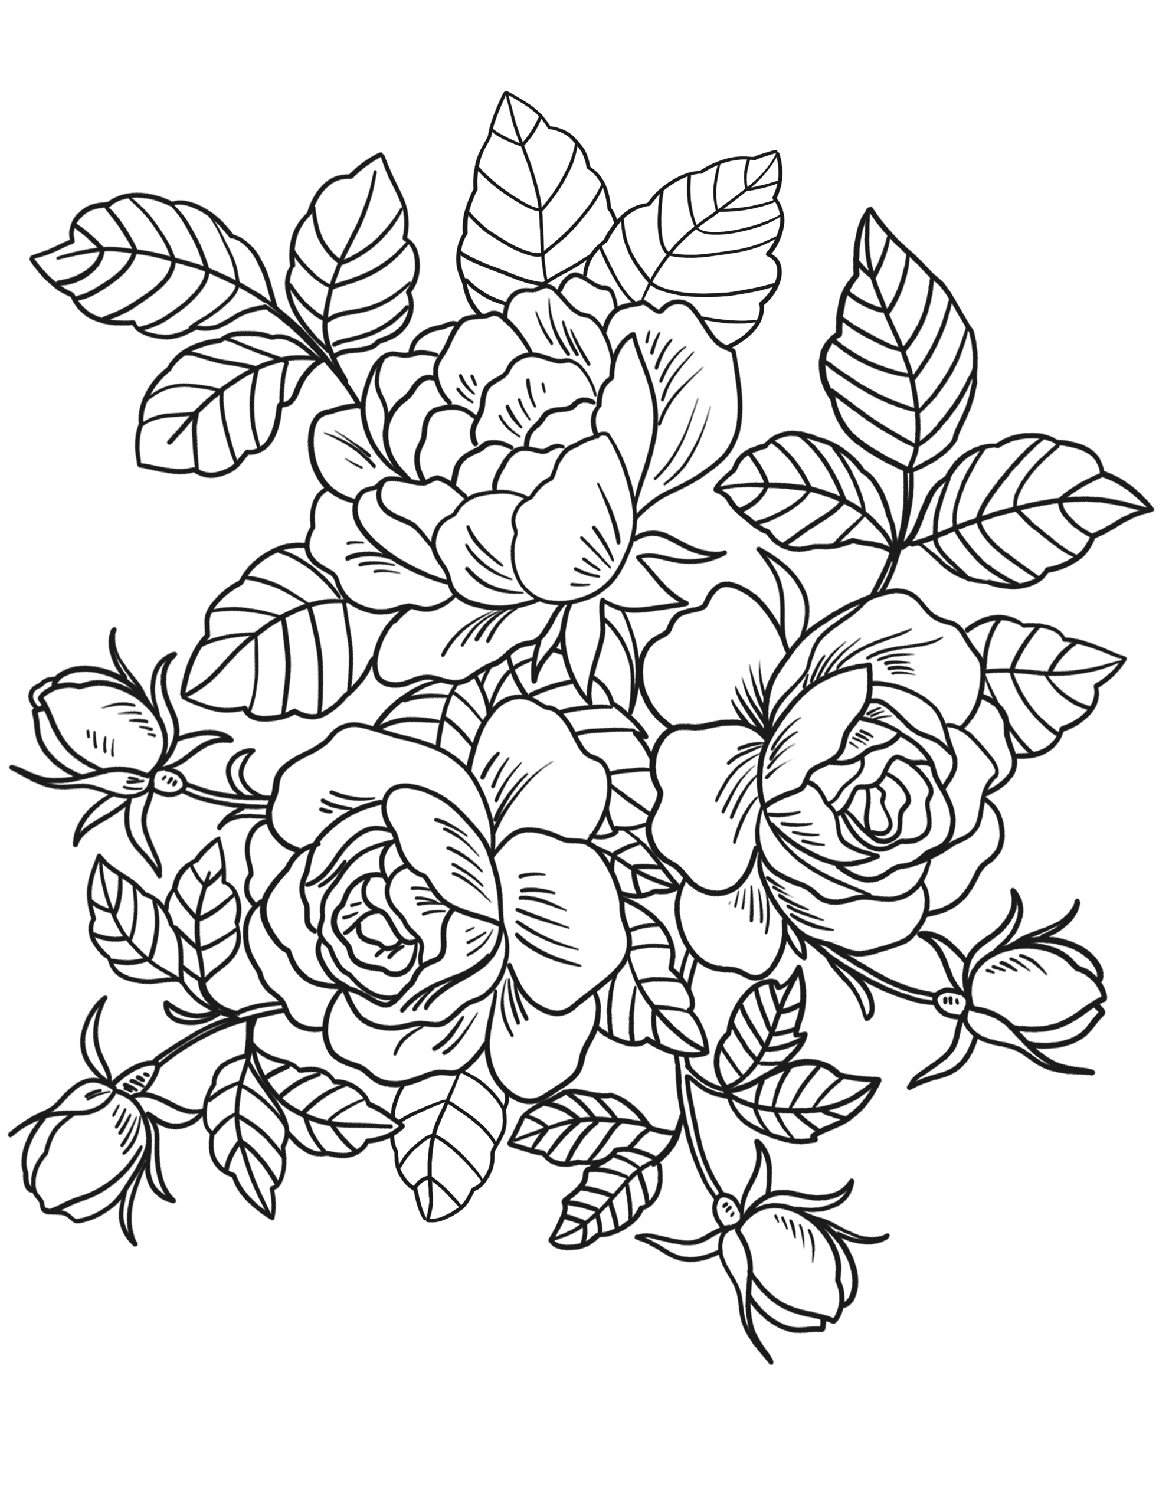 orchid coloring pages free printable flower coloring pages for kids cool2bkids orchid pages coloring